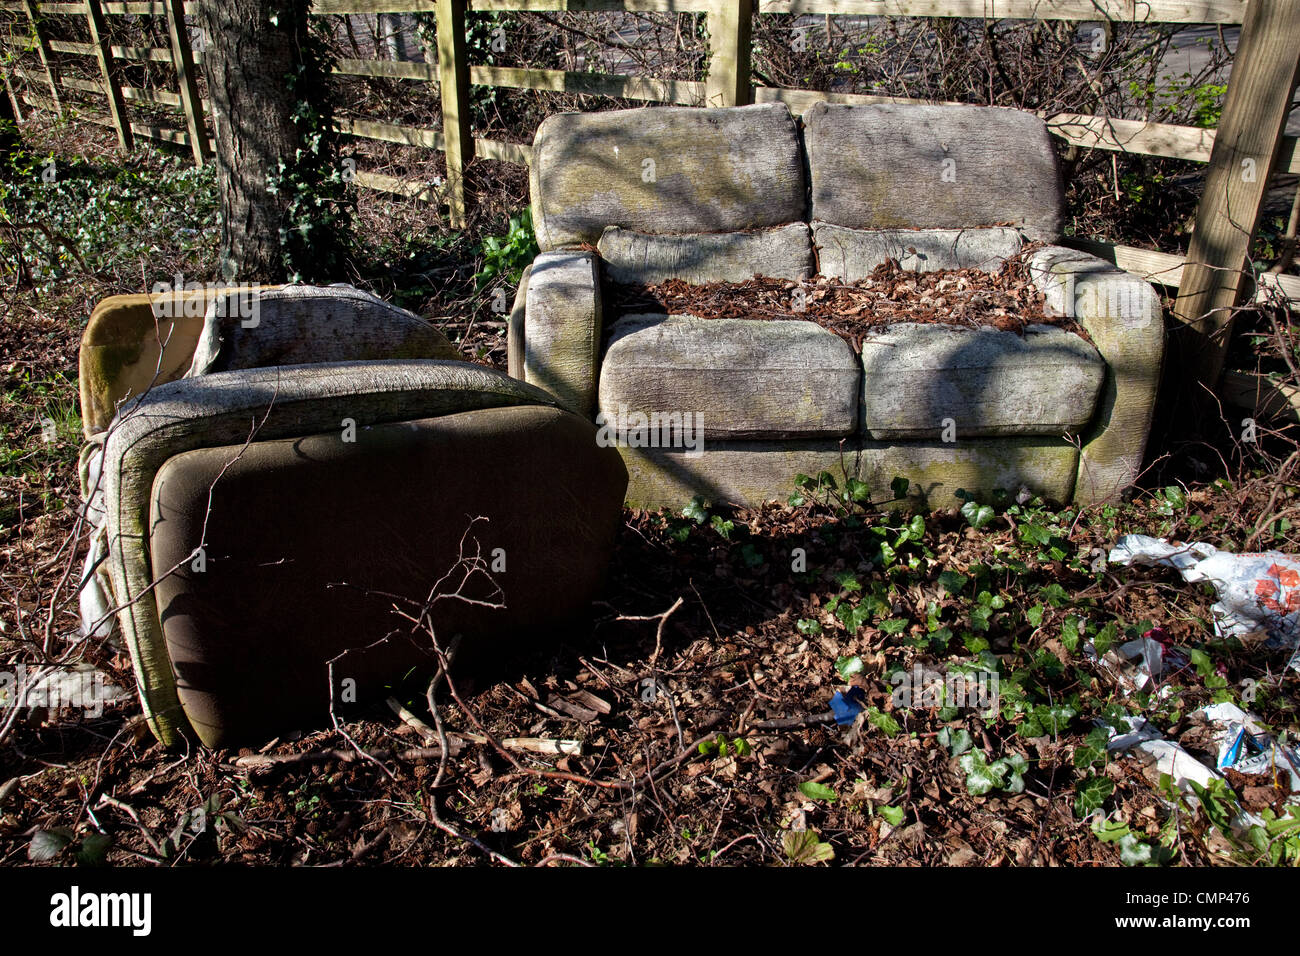 Old suite illegally dumped on a Devon roadside instead of using the local recycling and waste disposal facilities. - Stock Image